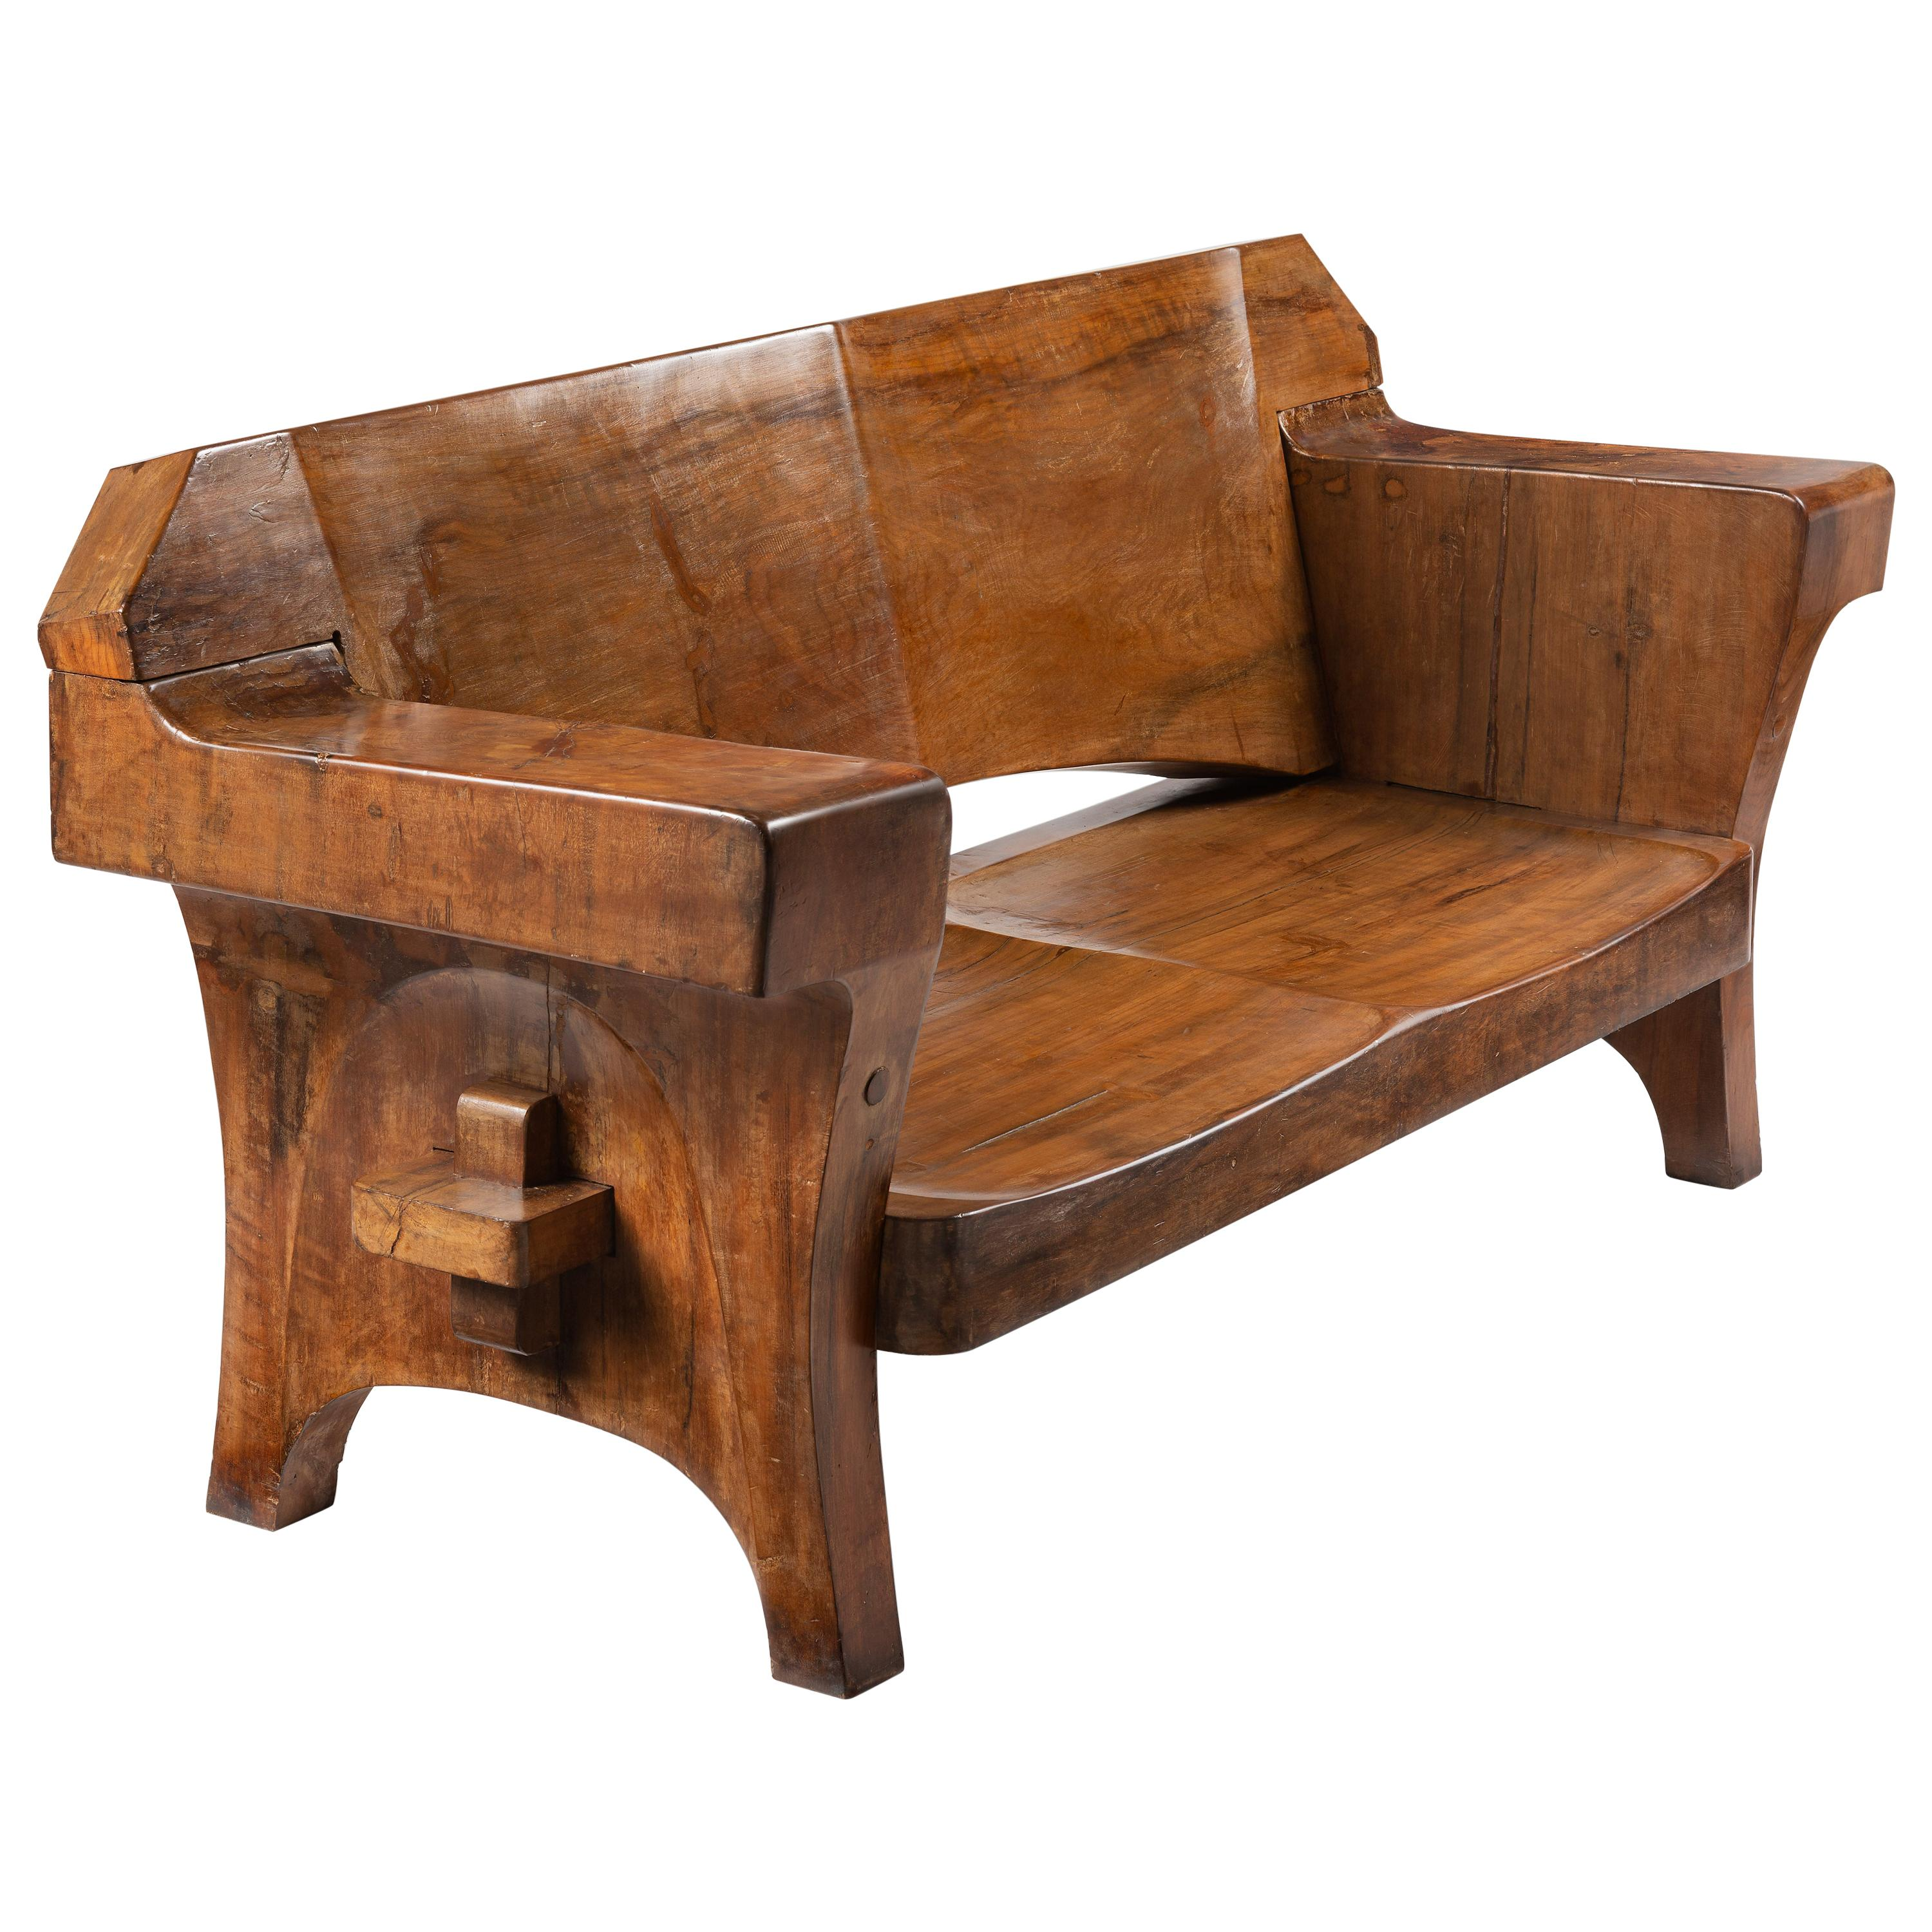 sculptural solid wood and handcrafted sofa by jose zanine caldas circa 1980